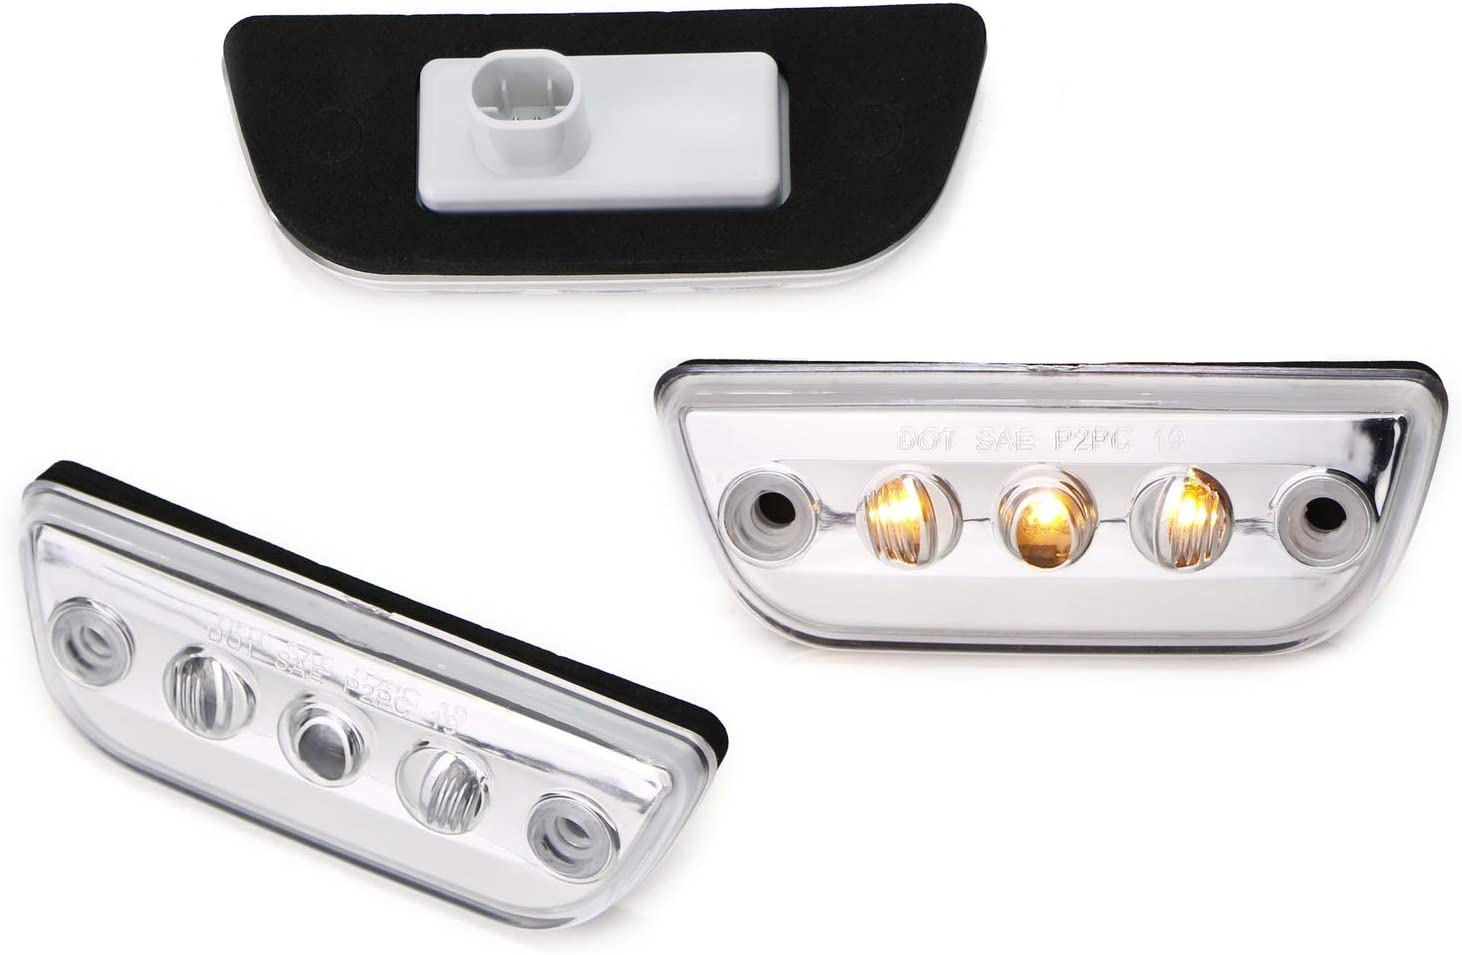 iJDMTOY 5pc Clear Lens Chrome Finish Super Bright Amber Full LED Front Cab Roof Marker Lights Compatible With Kenworth T680 T770 T880 Peterbilt 579 Semi-Truck